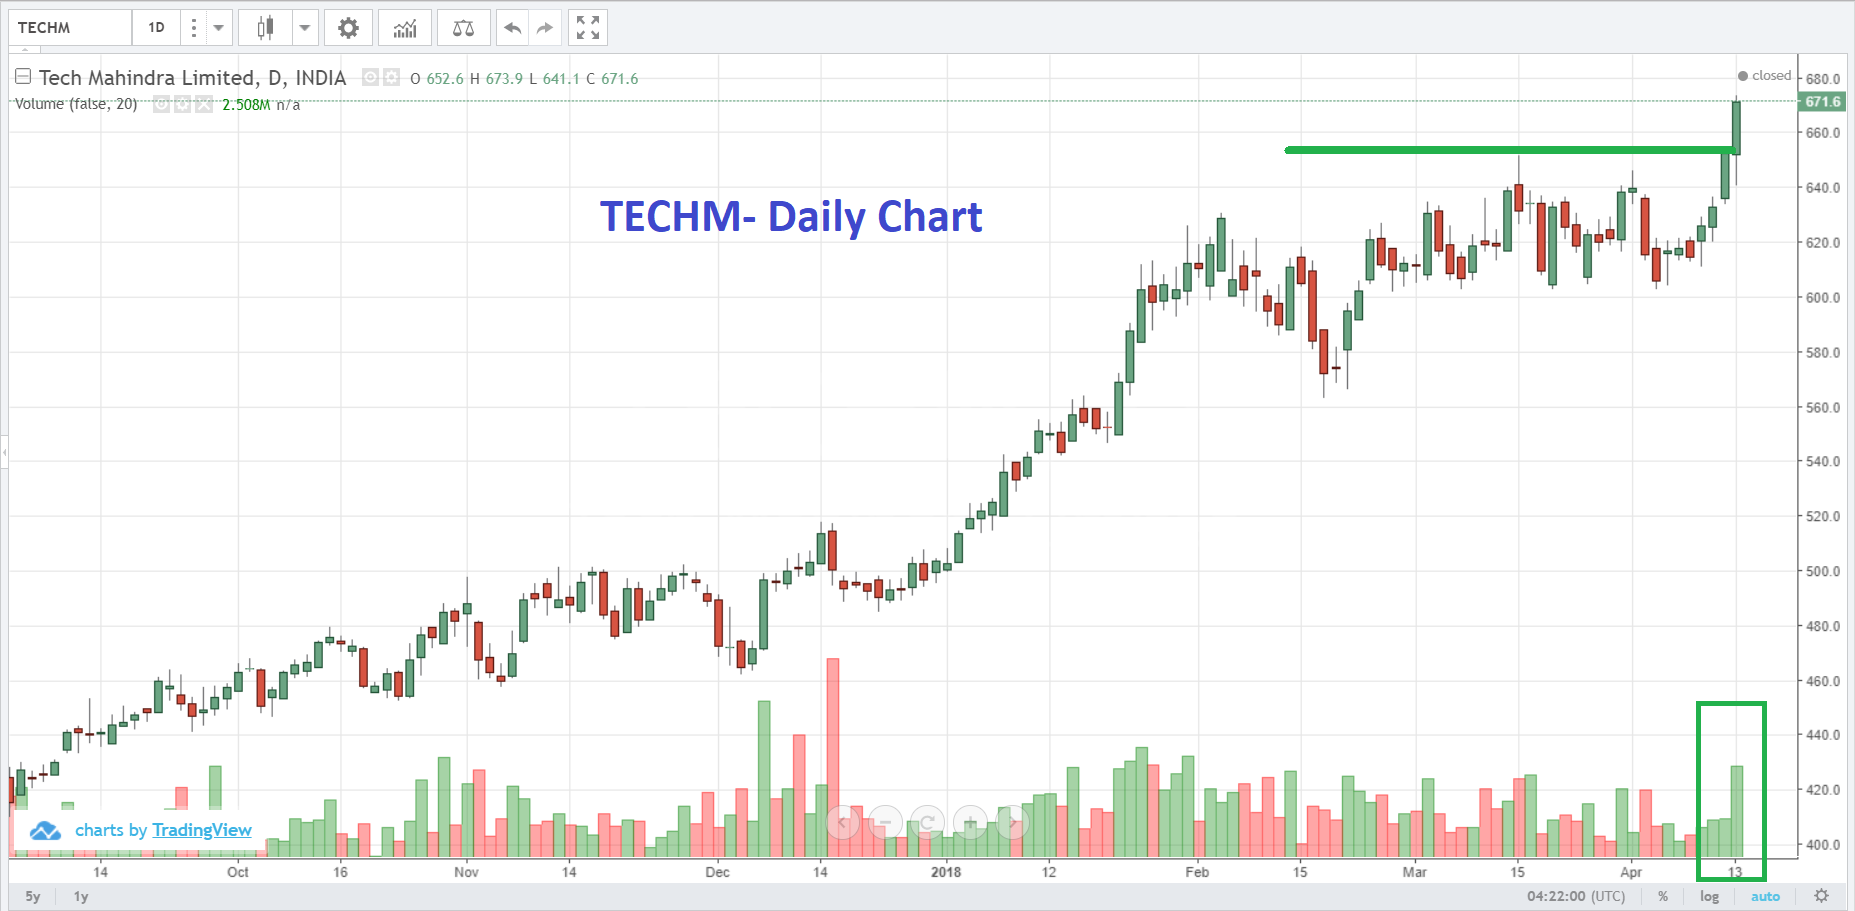 Top stocks to watch on Monday 14 April